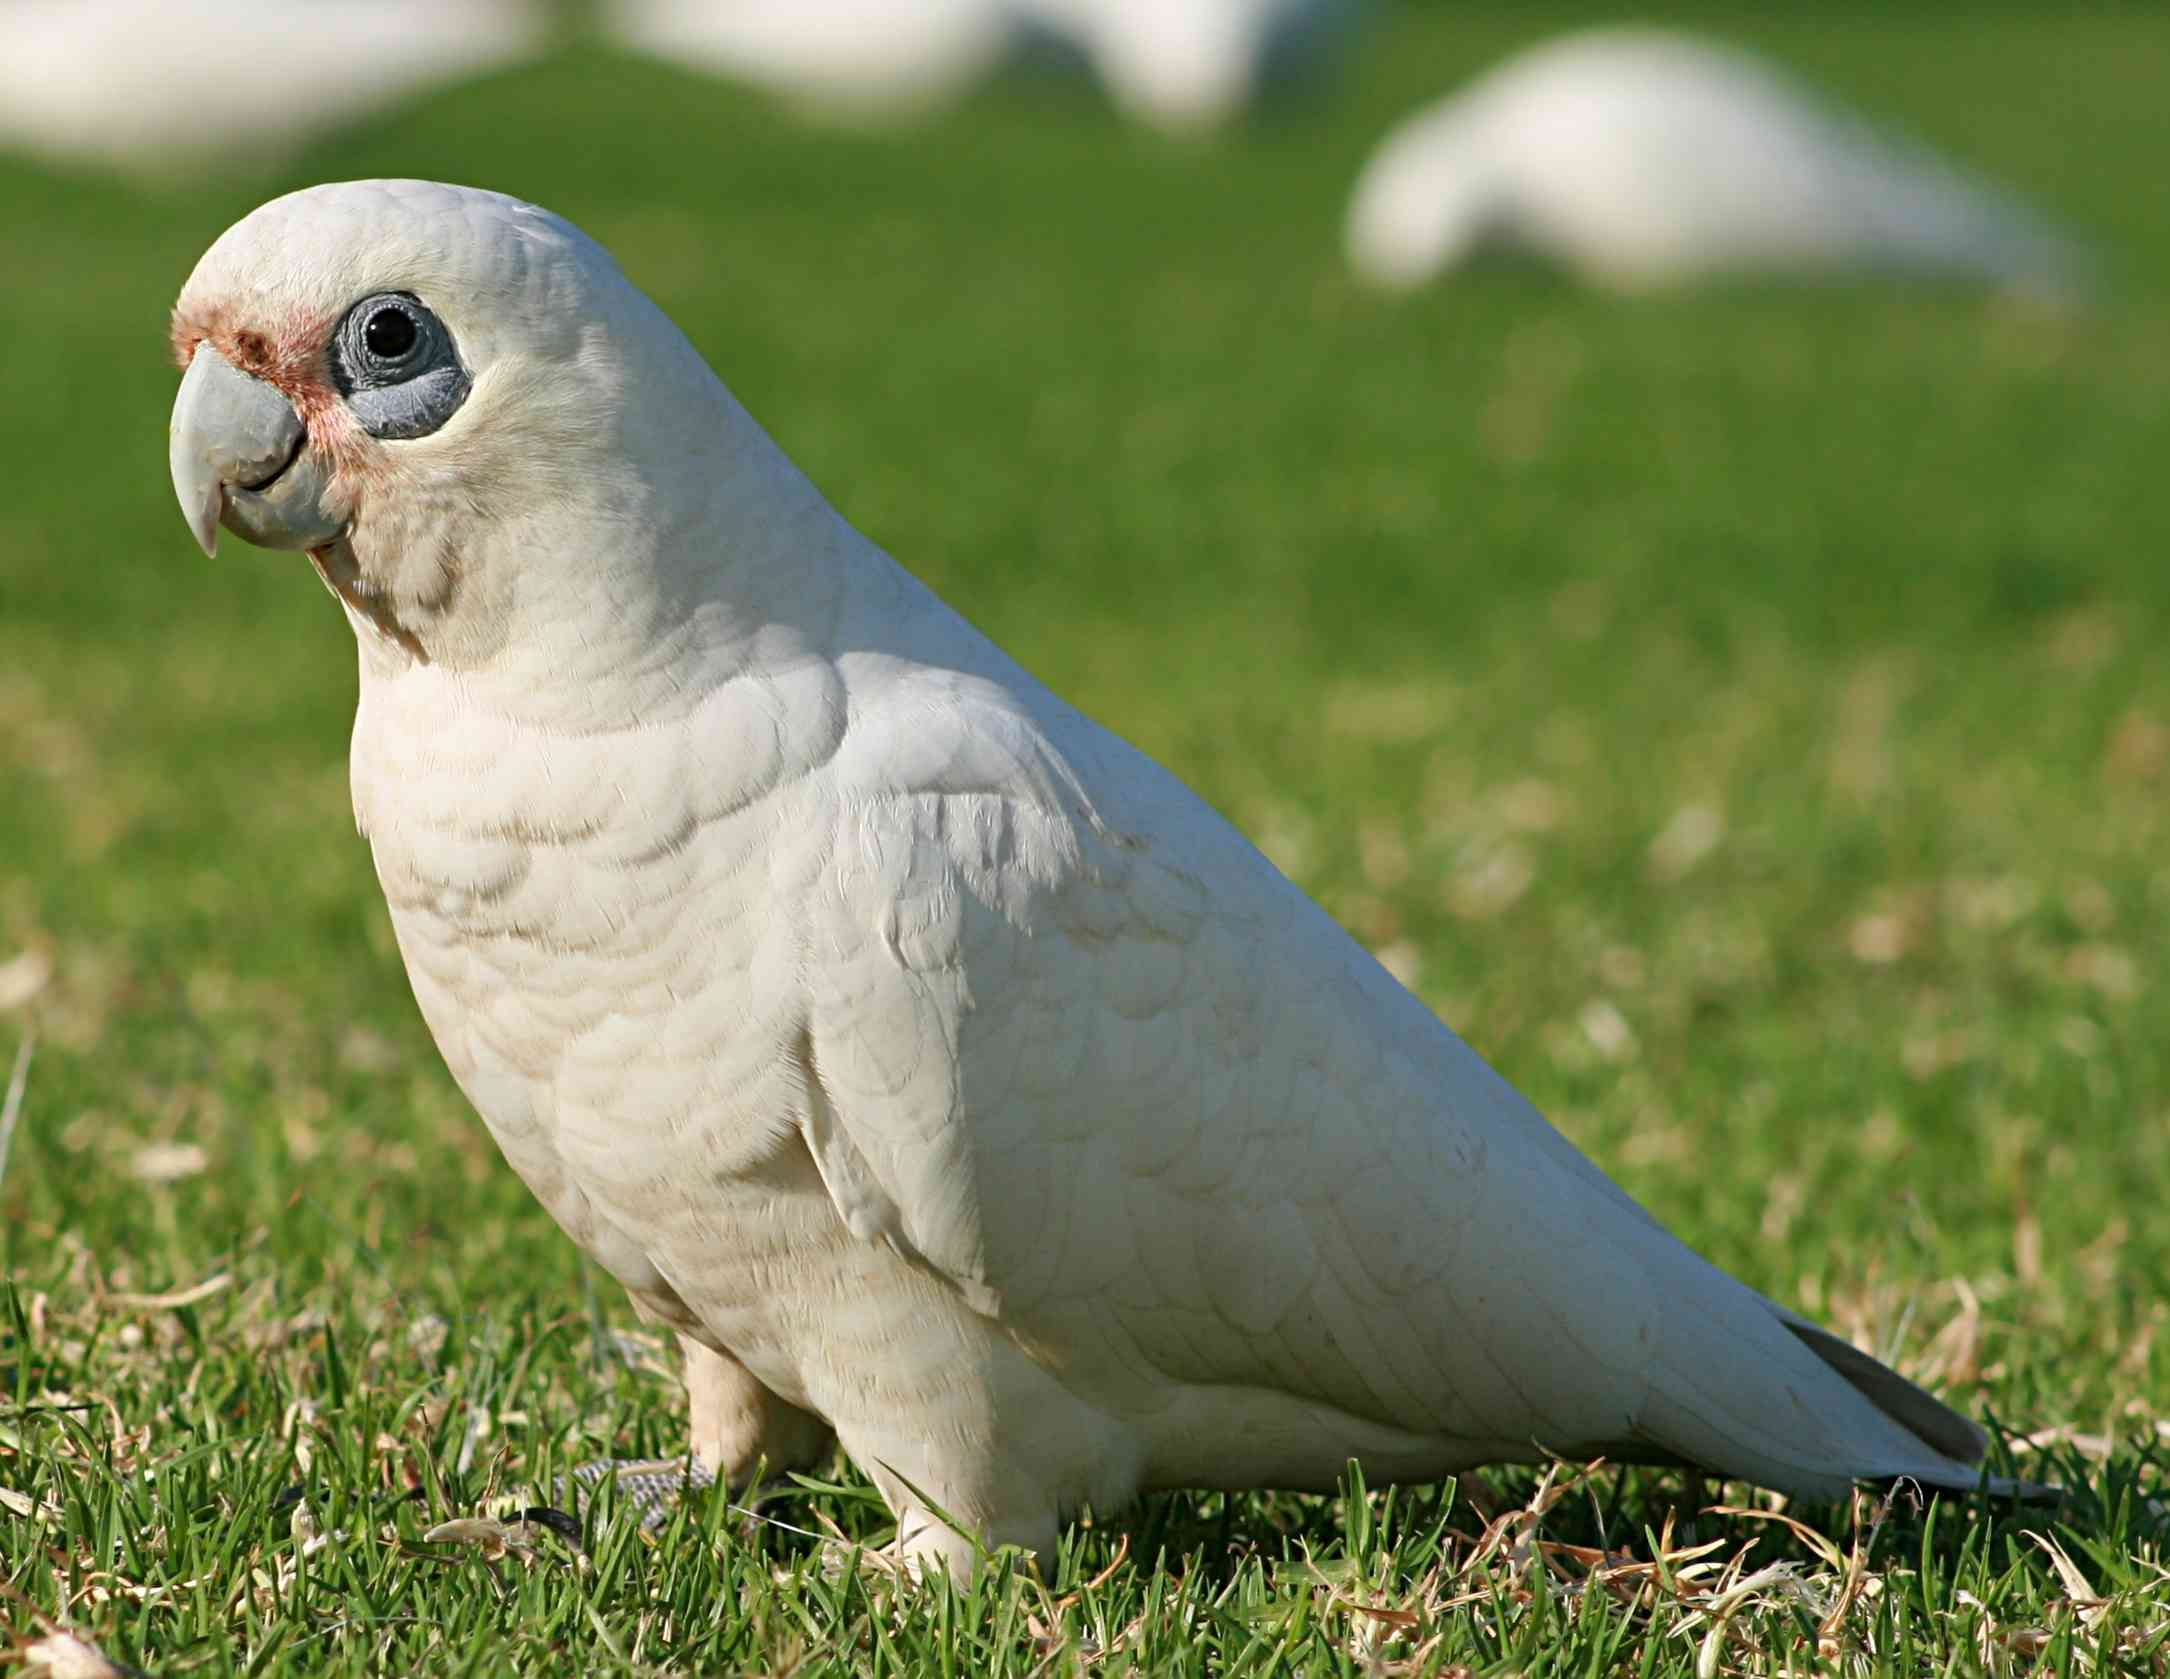 bare-eyed cockatoo standing on grass